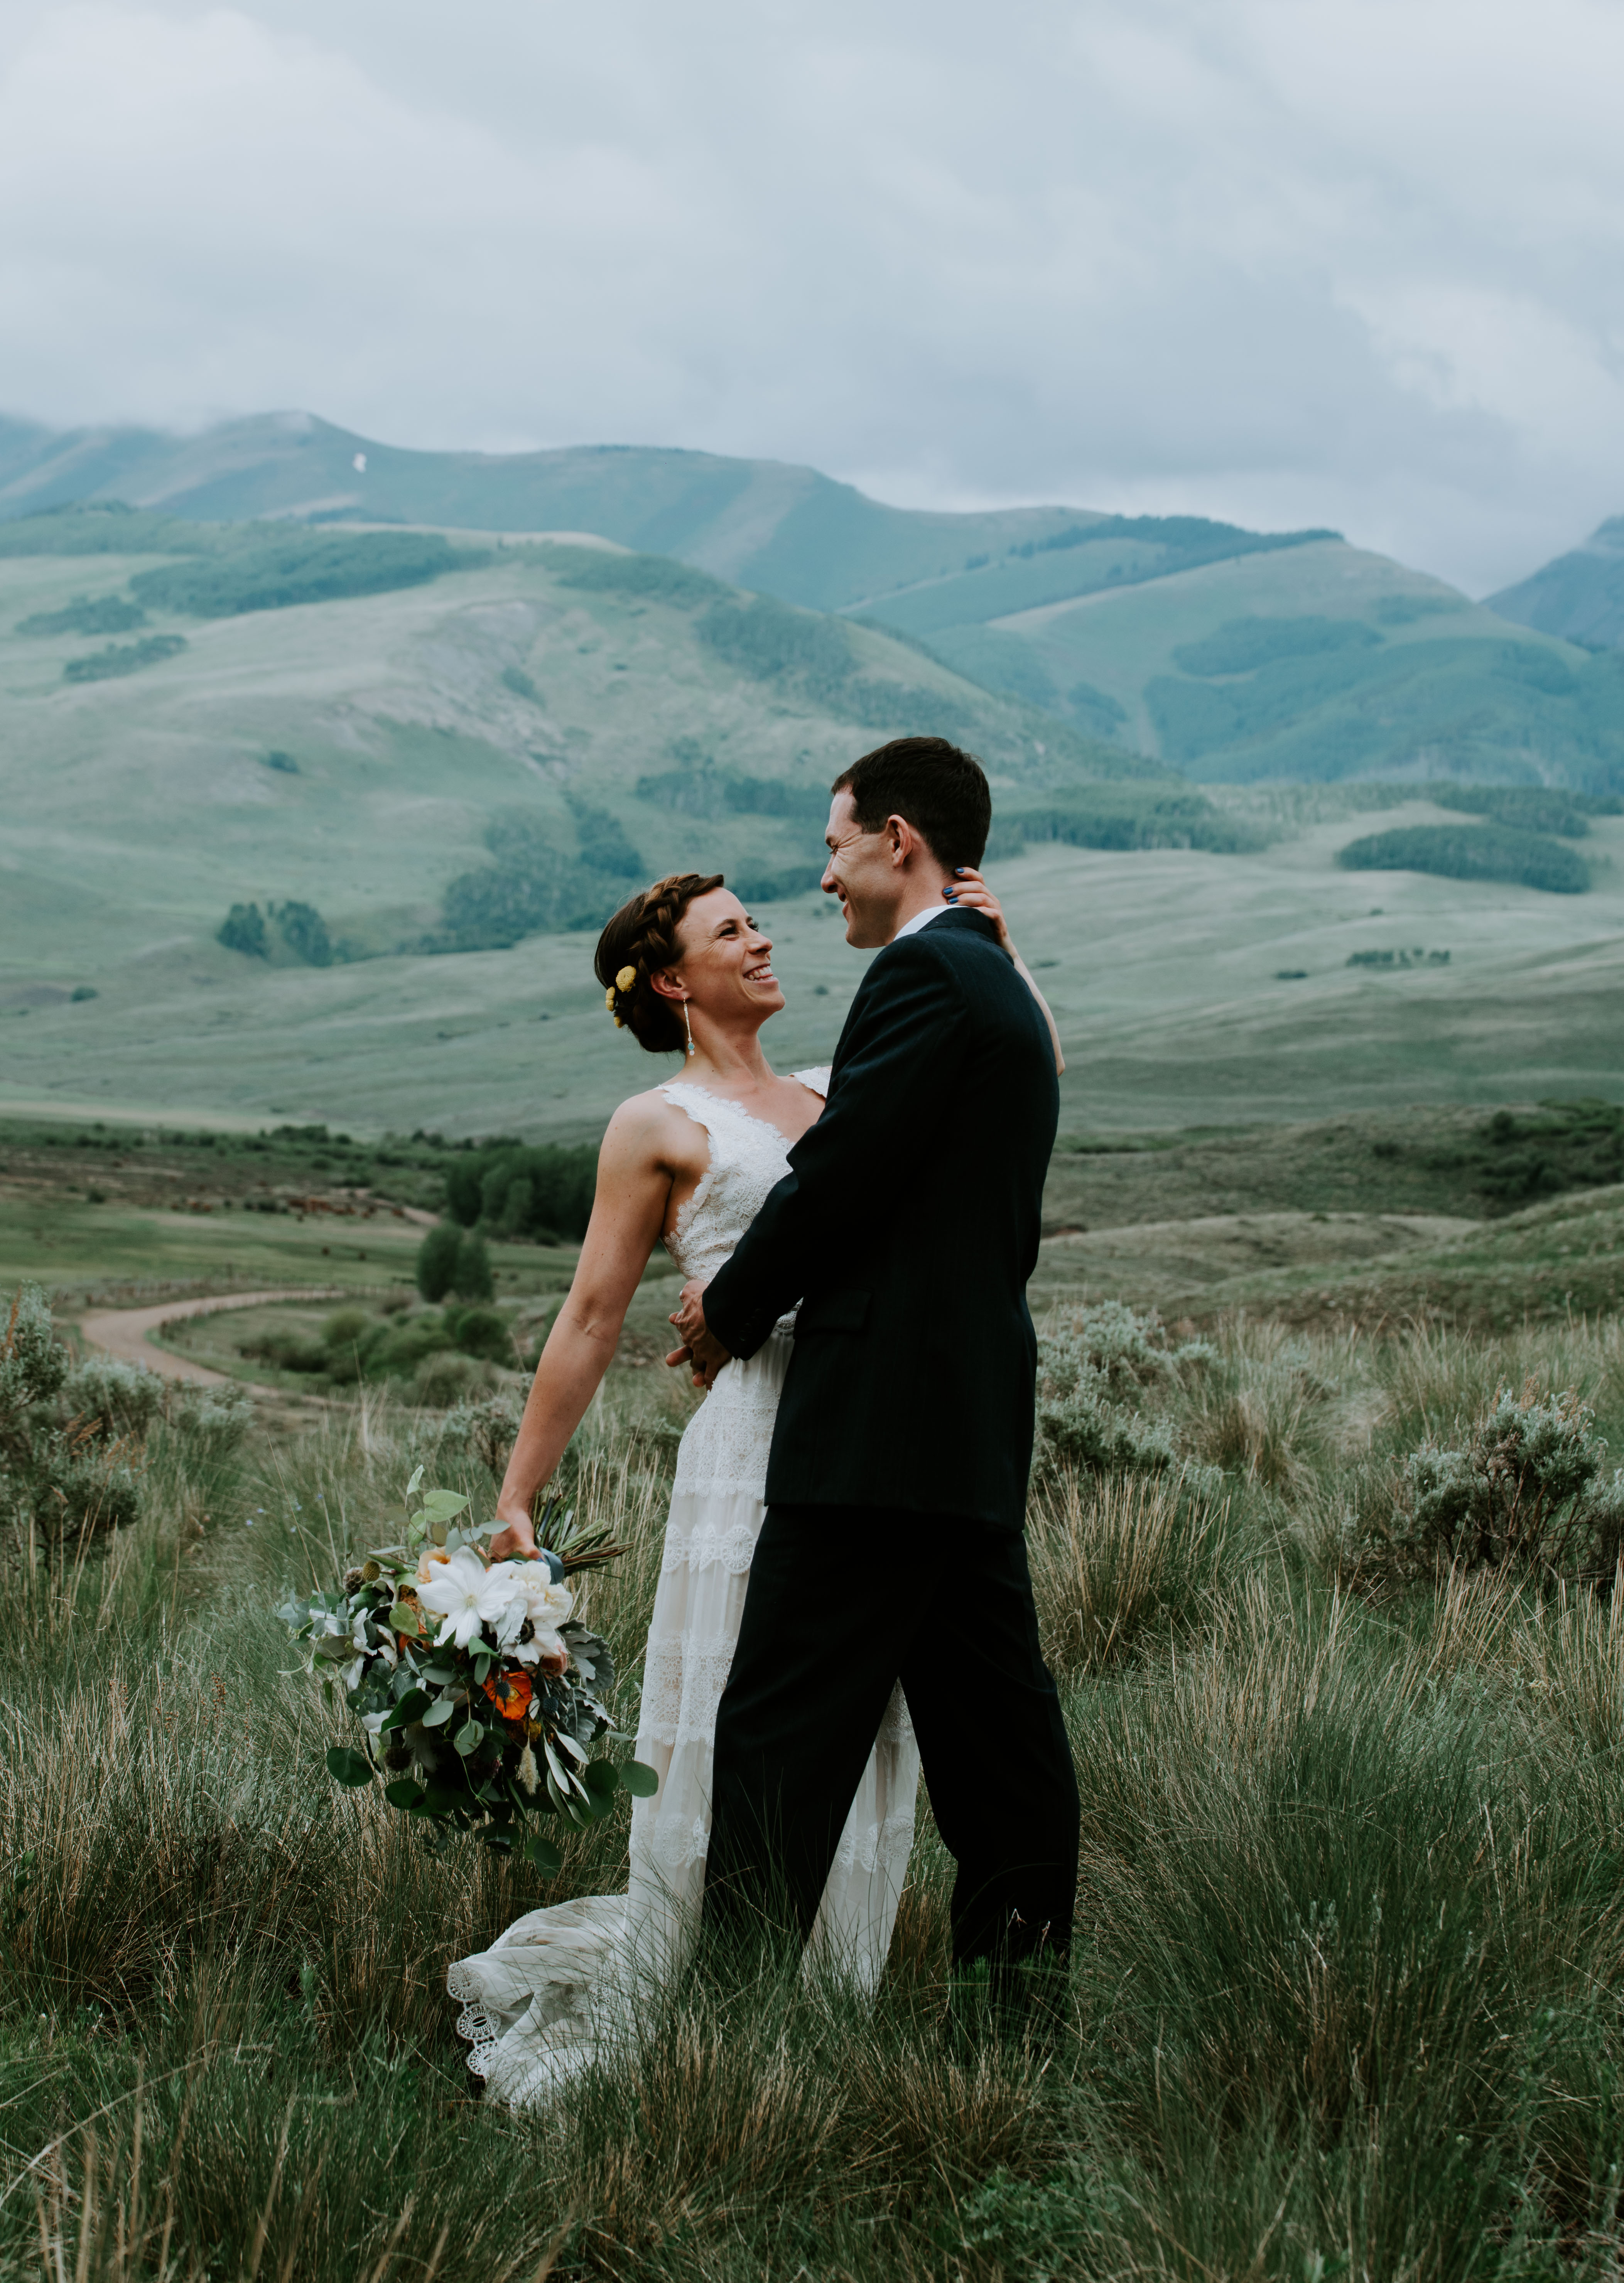 Laura_Alexe_Wedding_Crested_Butte_MegONeillPhotography__180616_44